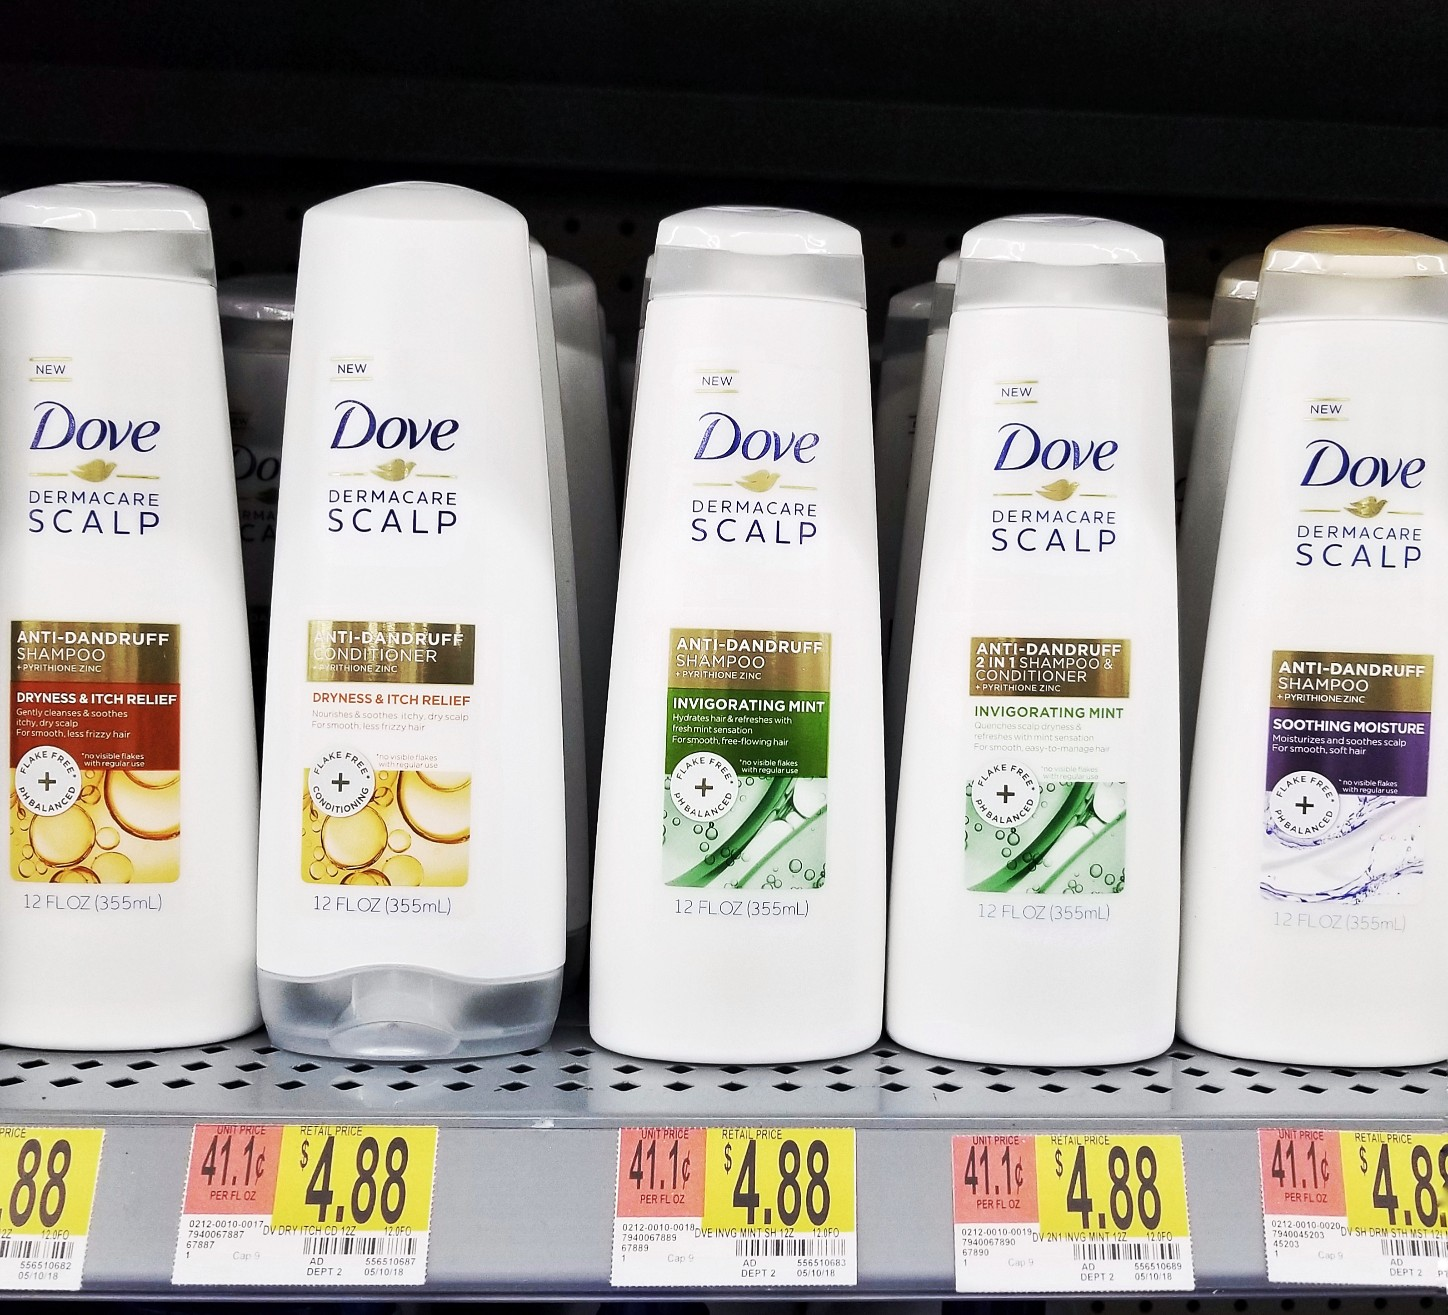 Dove Dermacare at Walmart